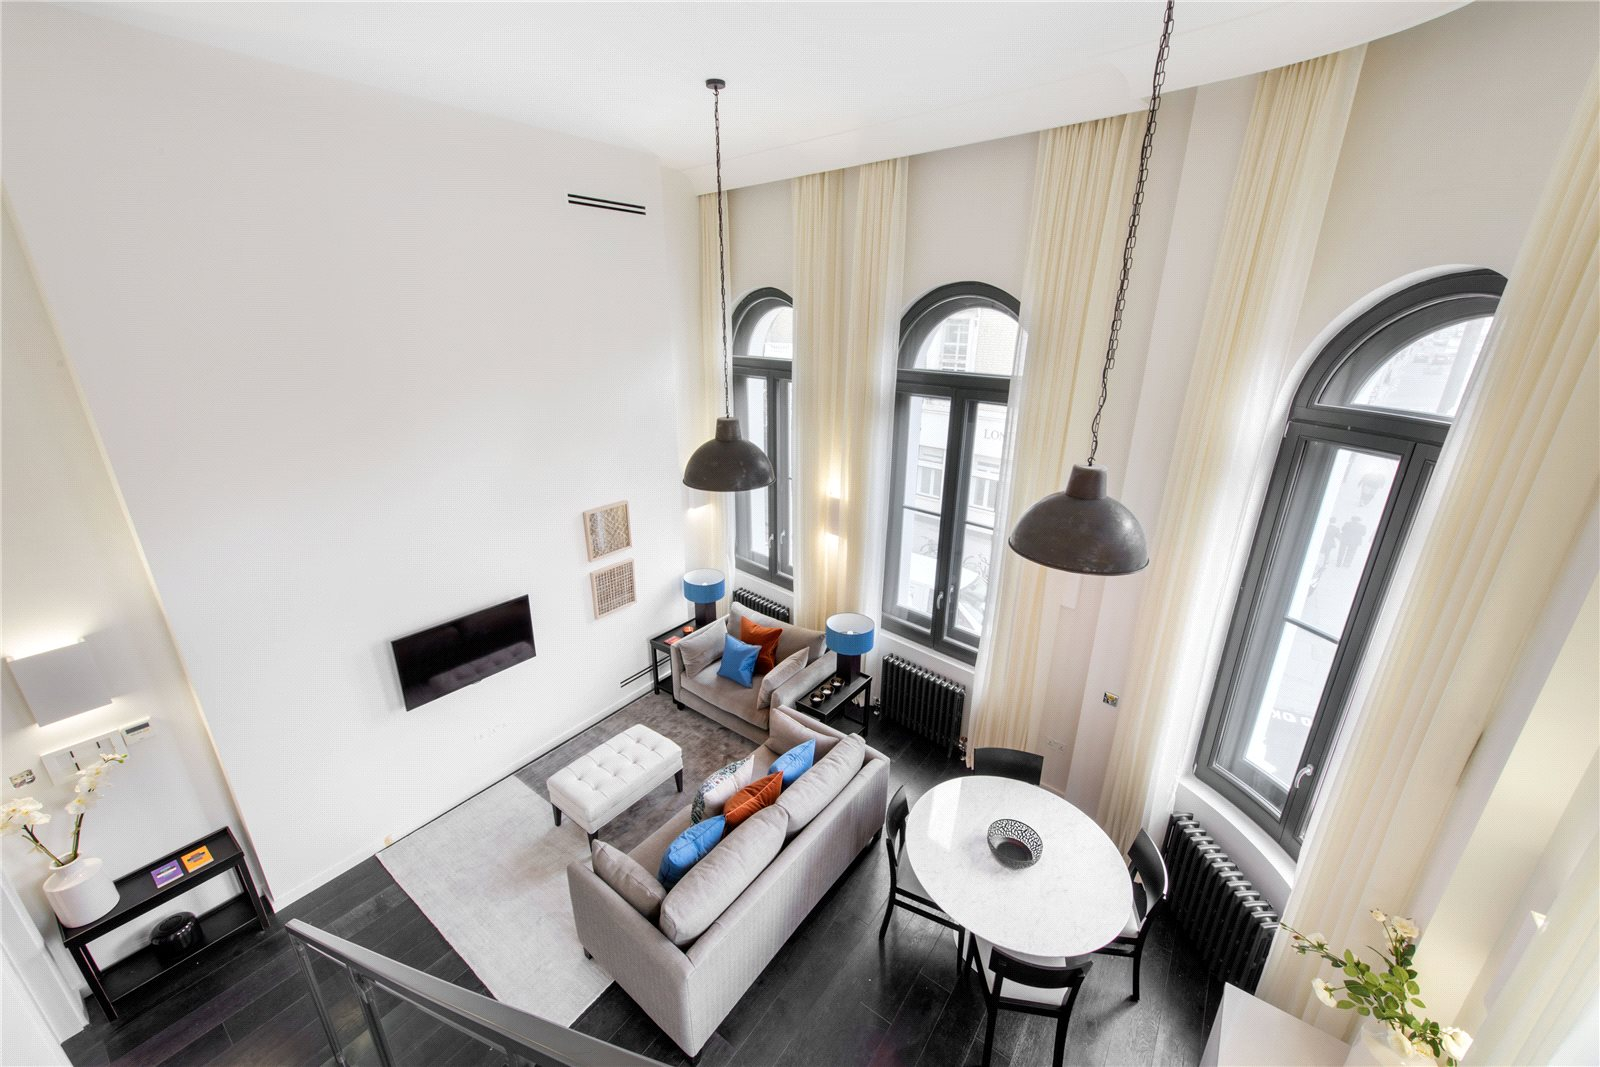 Apartments / Residences for Sale at Fulham Road, Chelsea, London, SW10 Chelsea, London, England